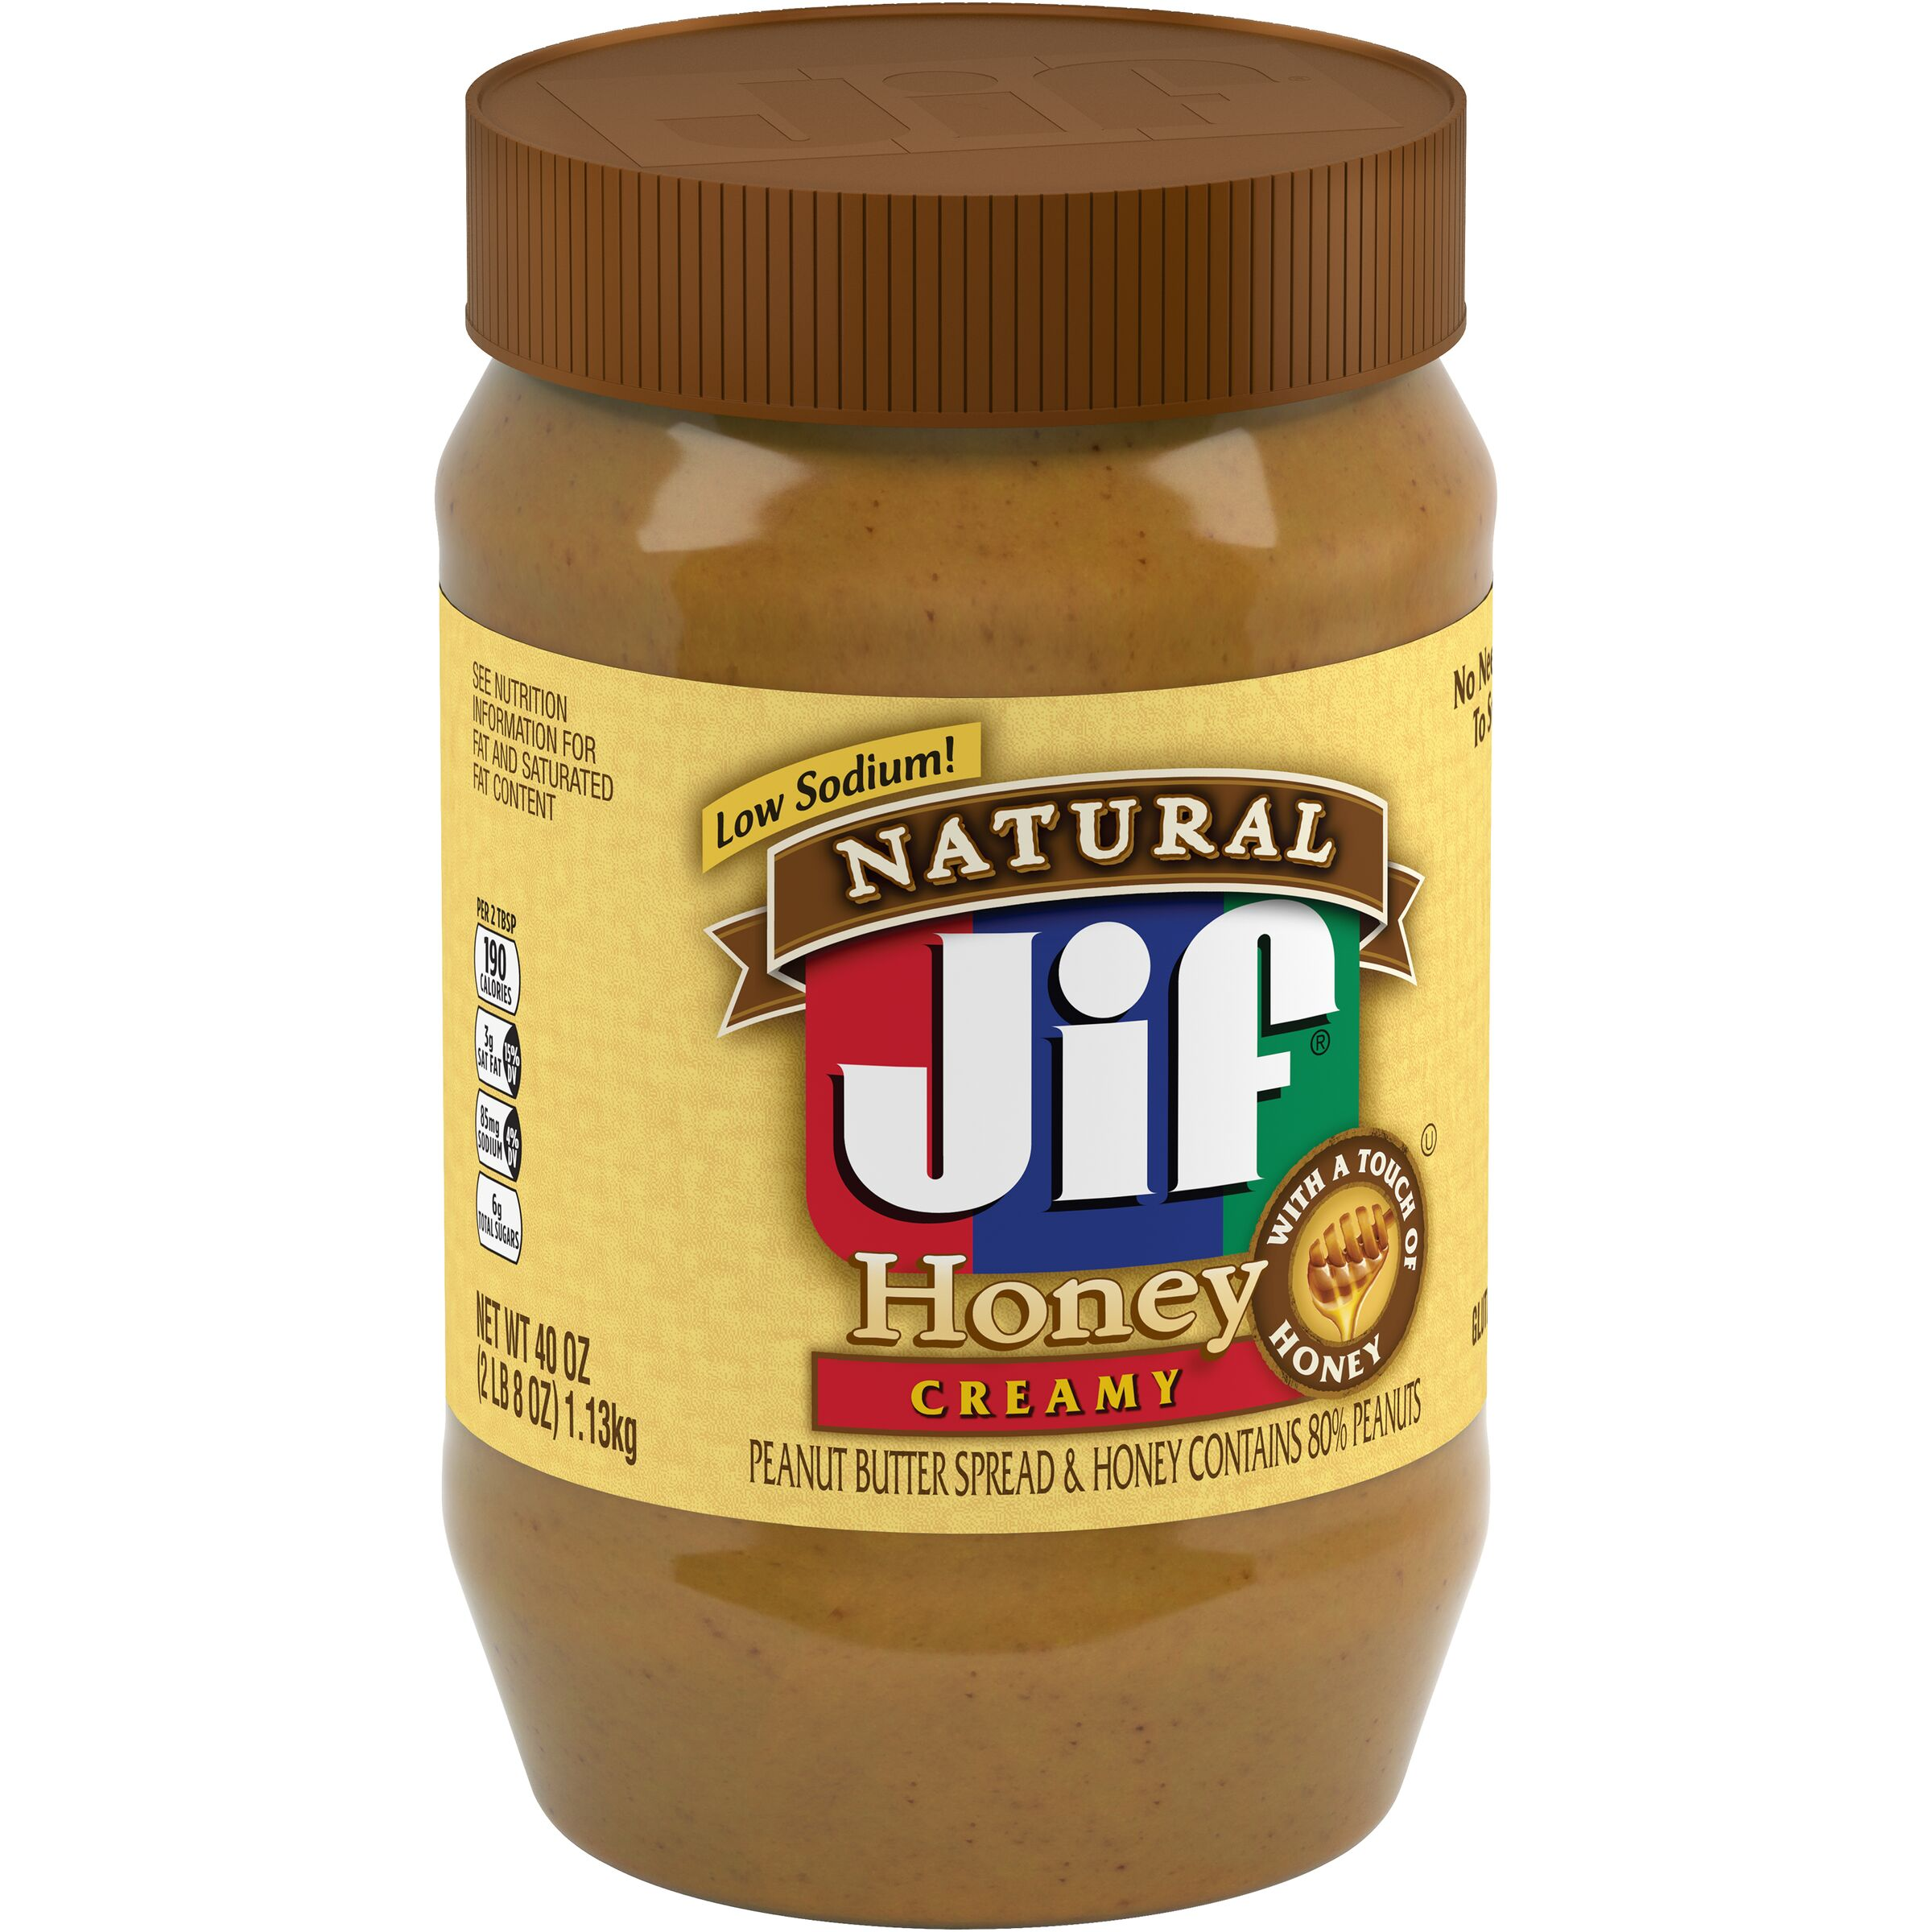 Jif Natural Creamy Peanut Butter Spread & Honey Contains 80% Peanuts